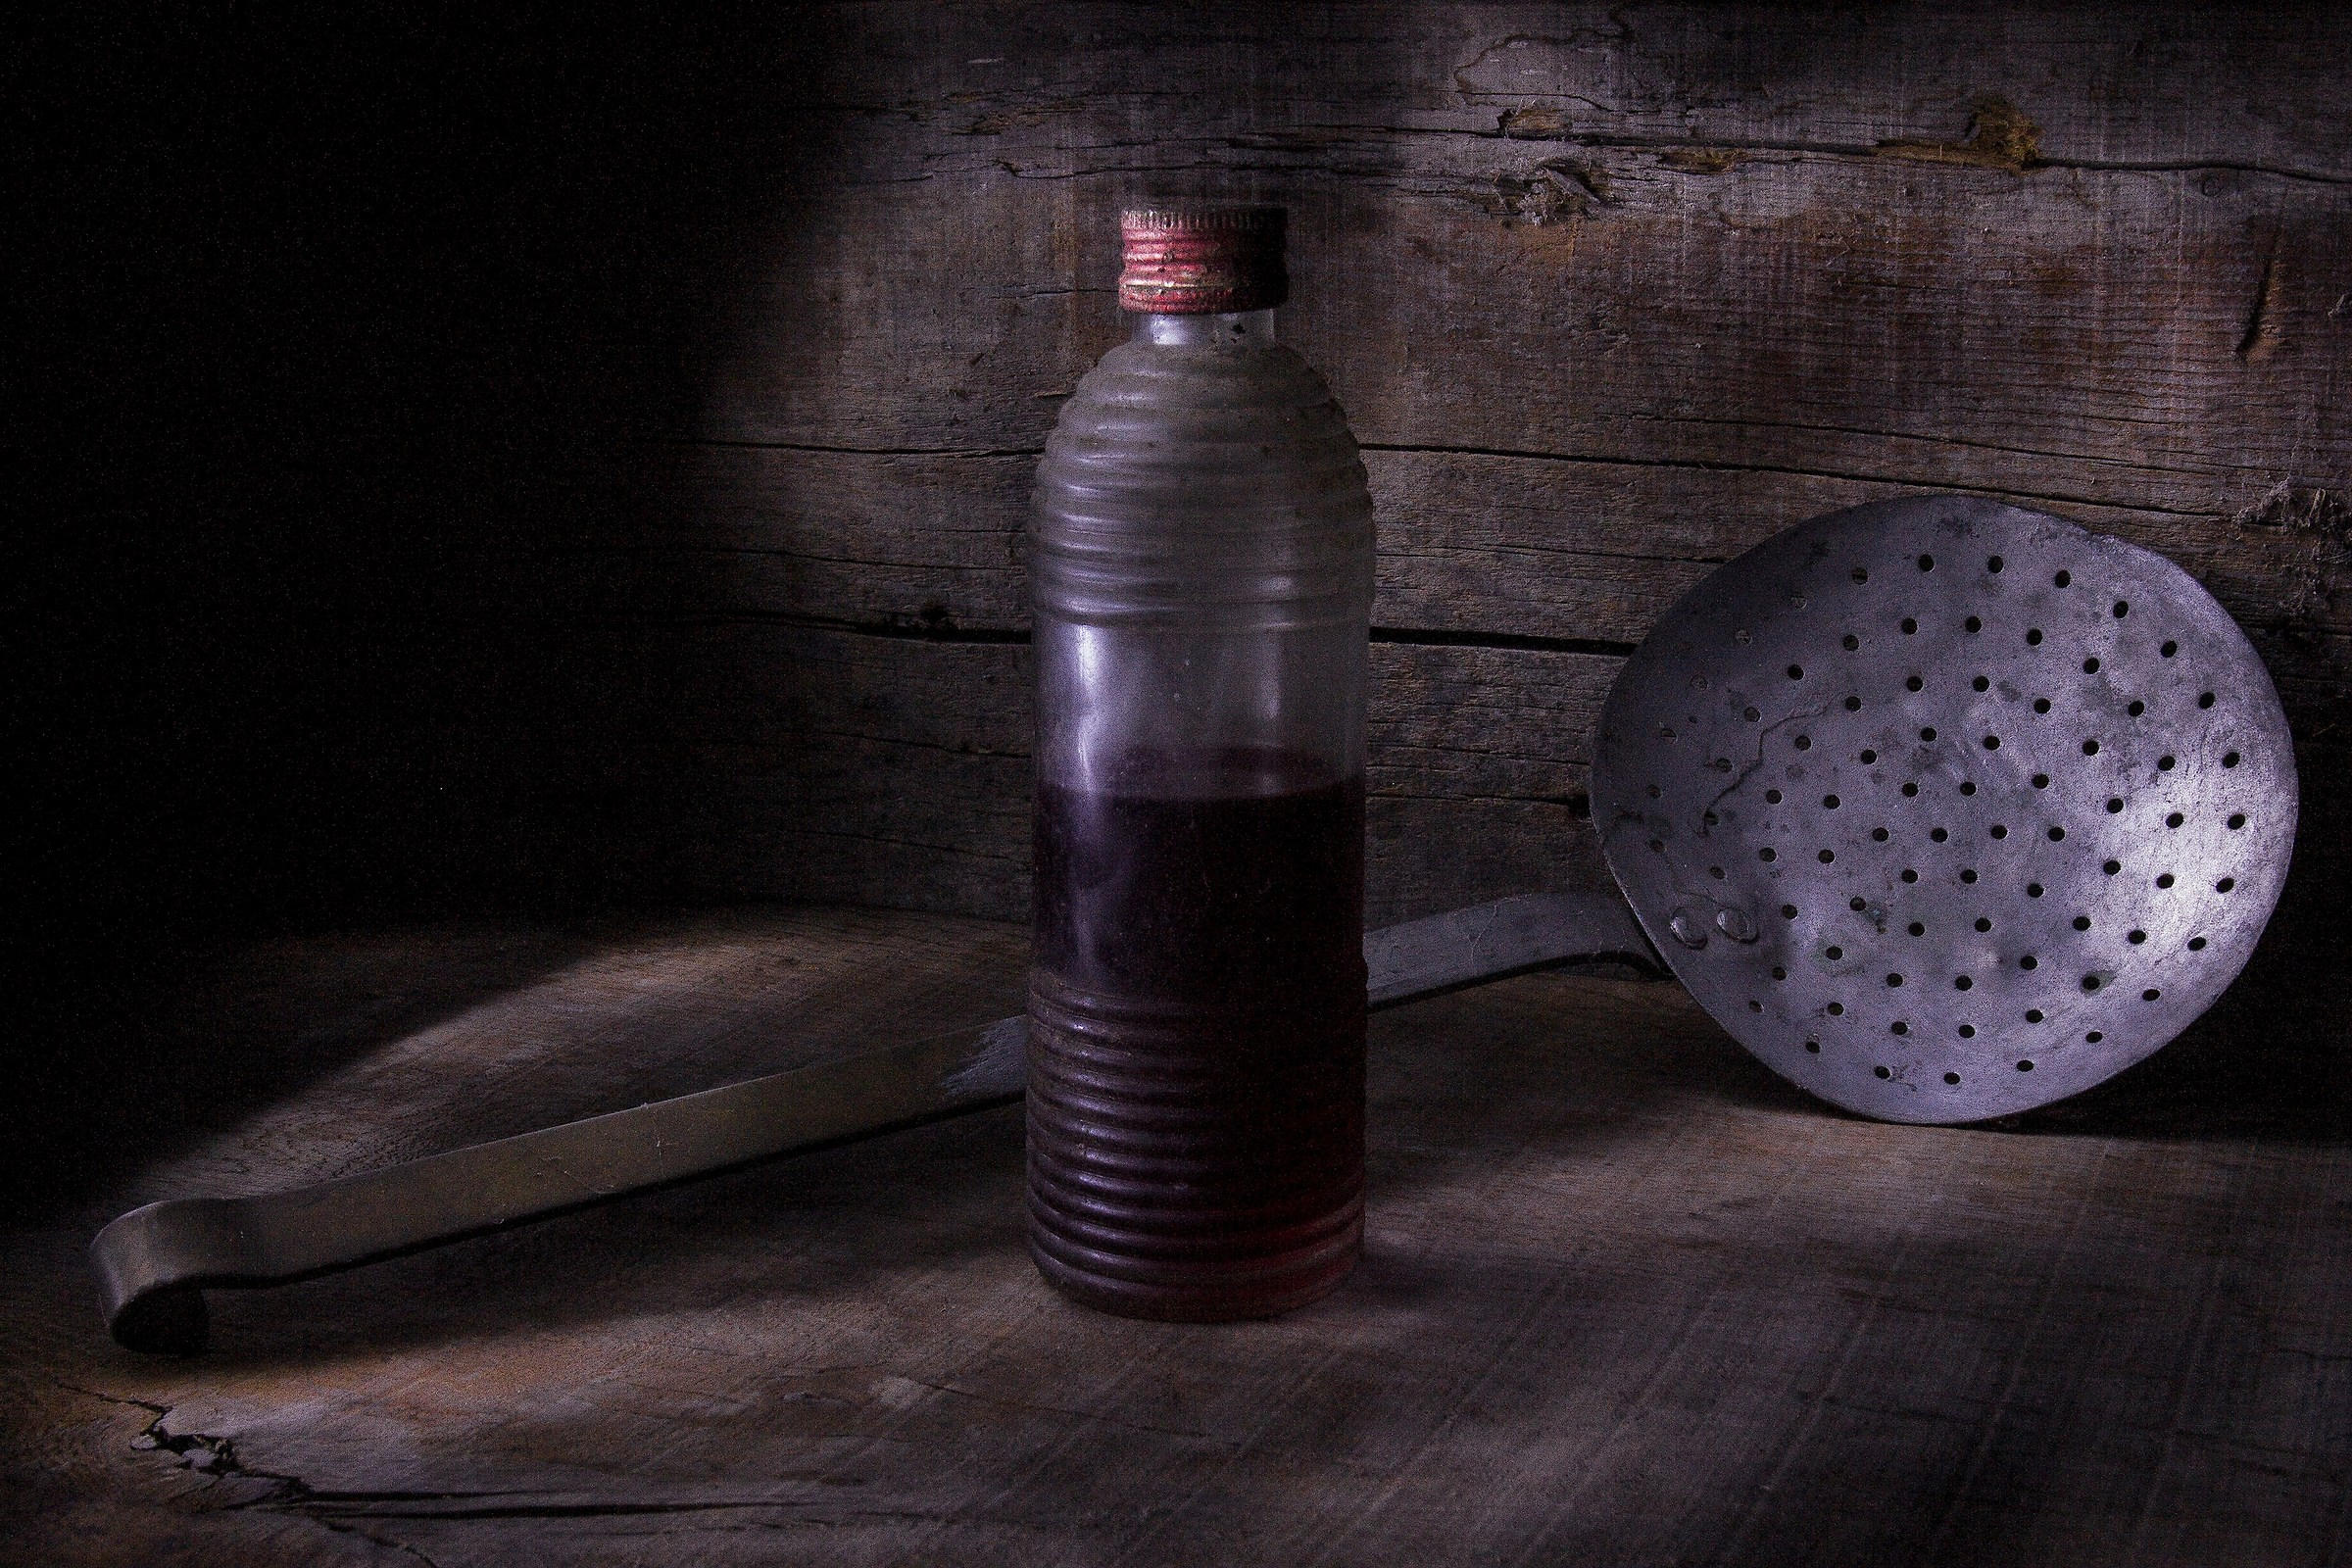 Oil and colander...